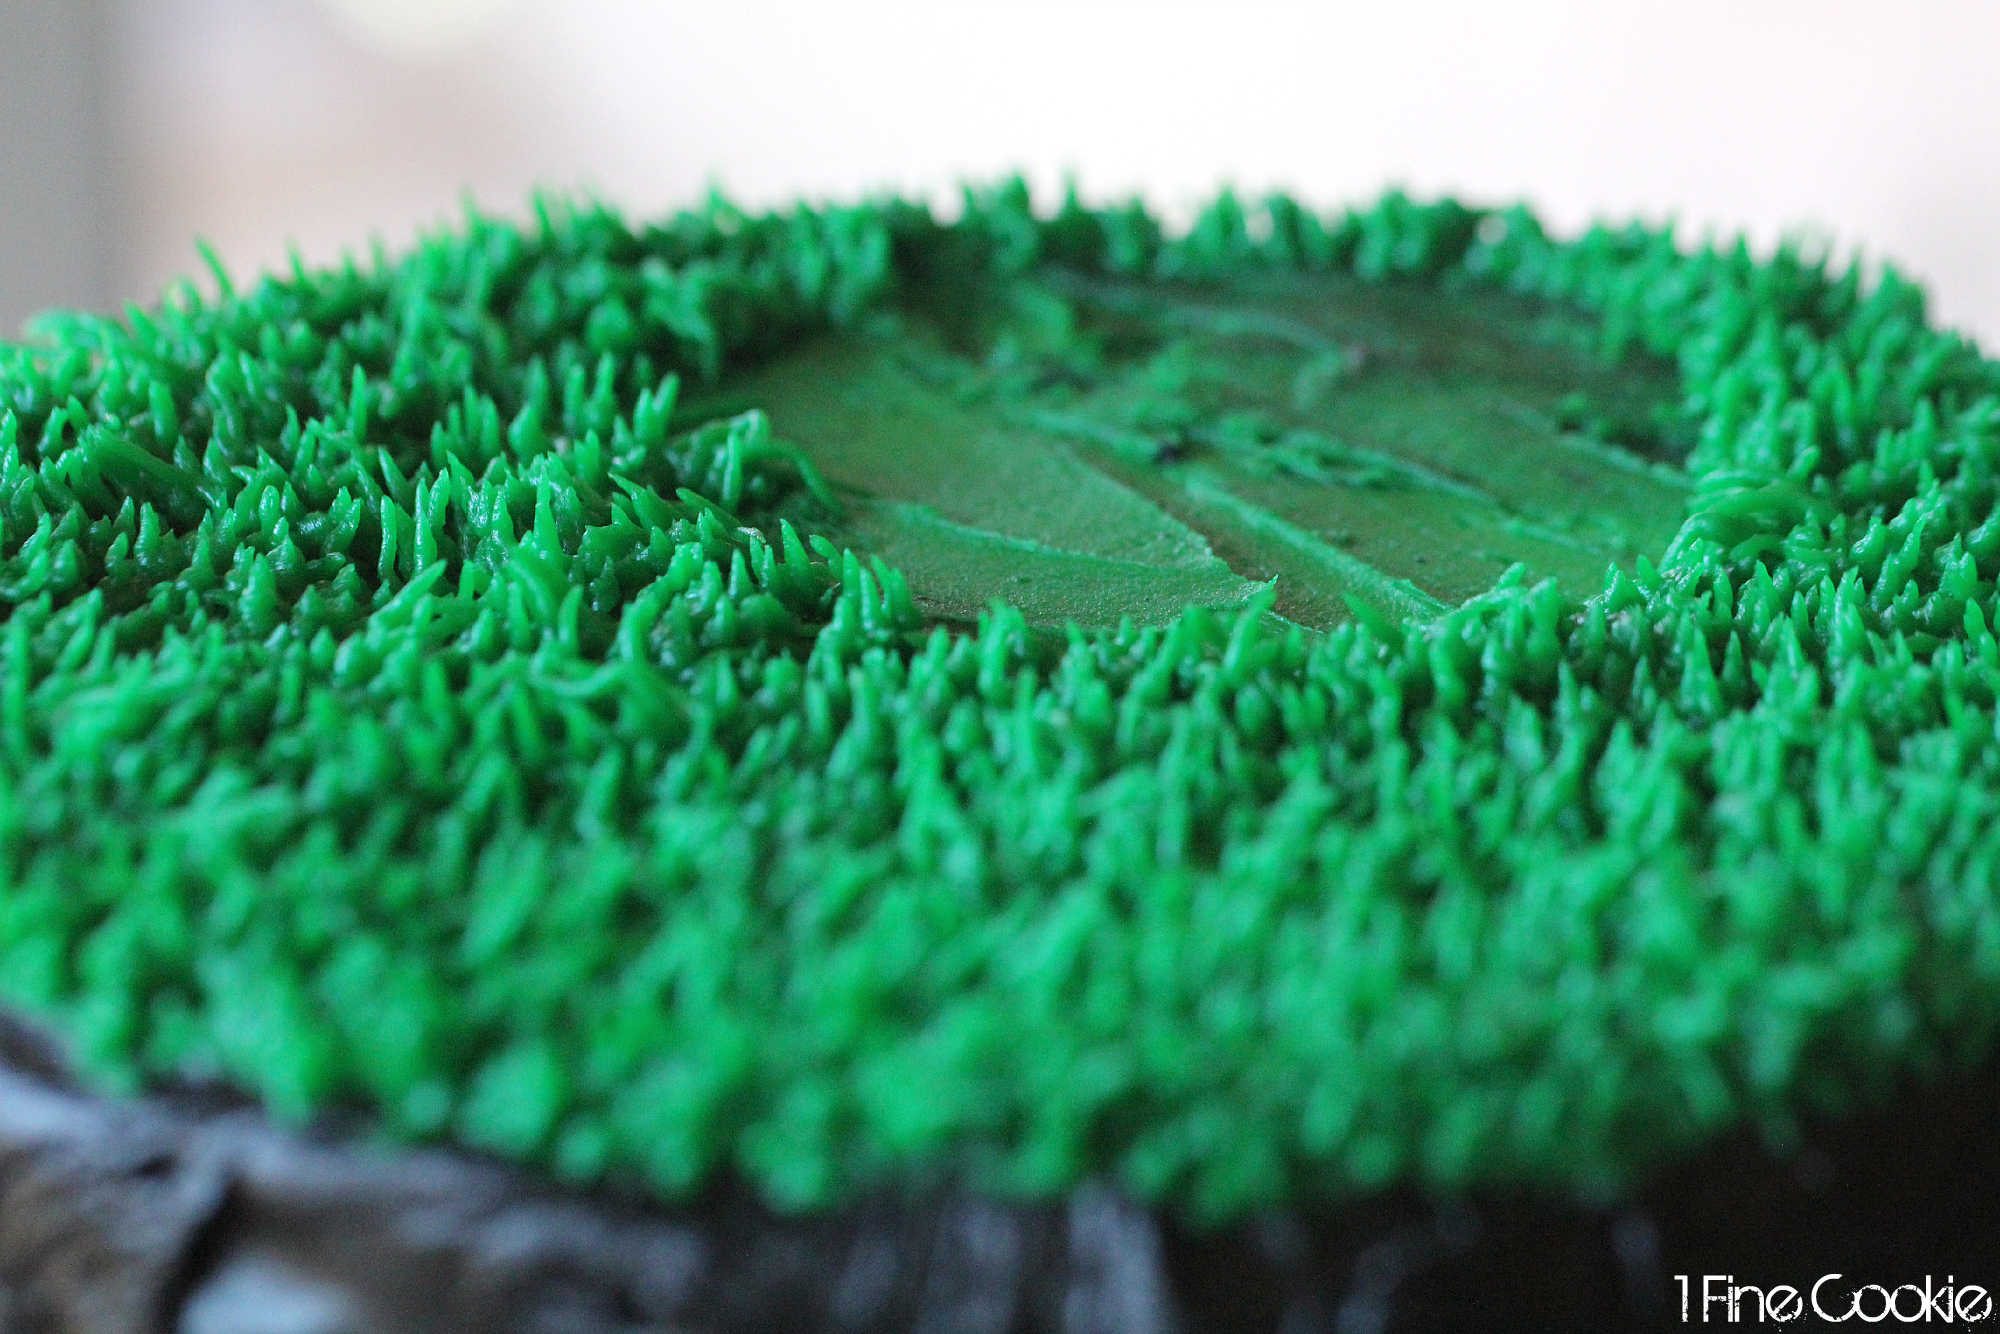 Cake Decorating Tips To Make Grass : Football Play Cake. Also, Tips for Black Frosting - 1 Fine ...